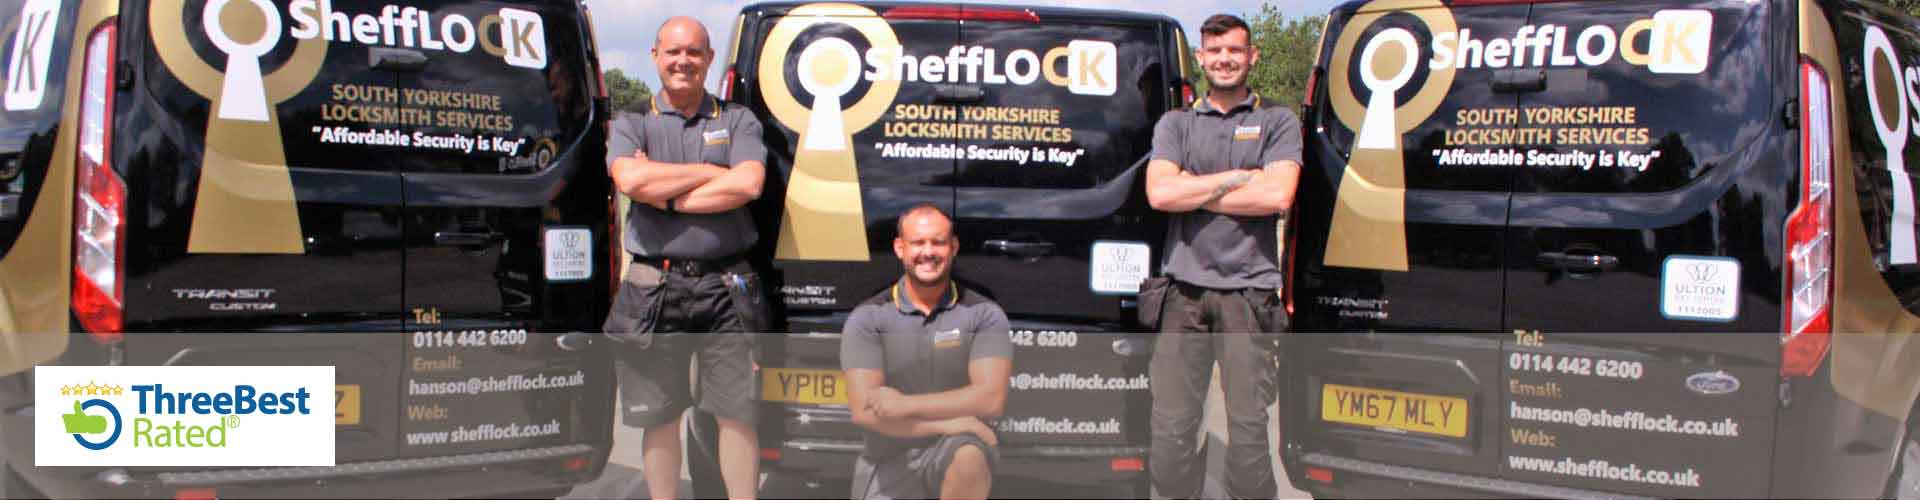 Sheffield Locksmiths